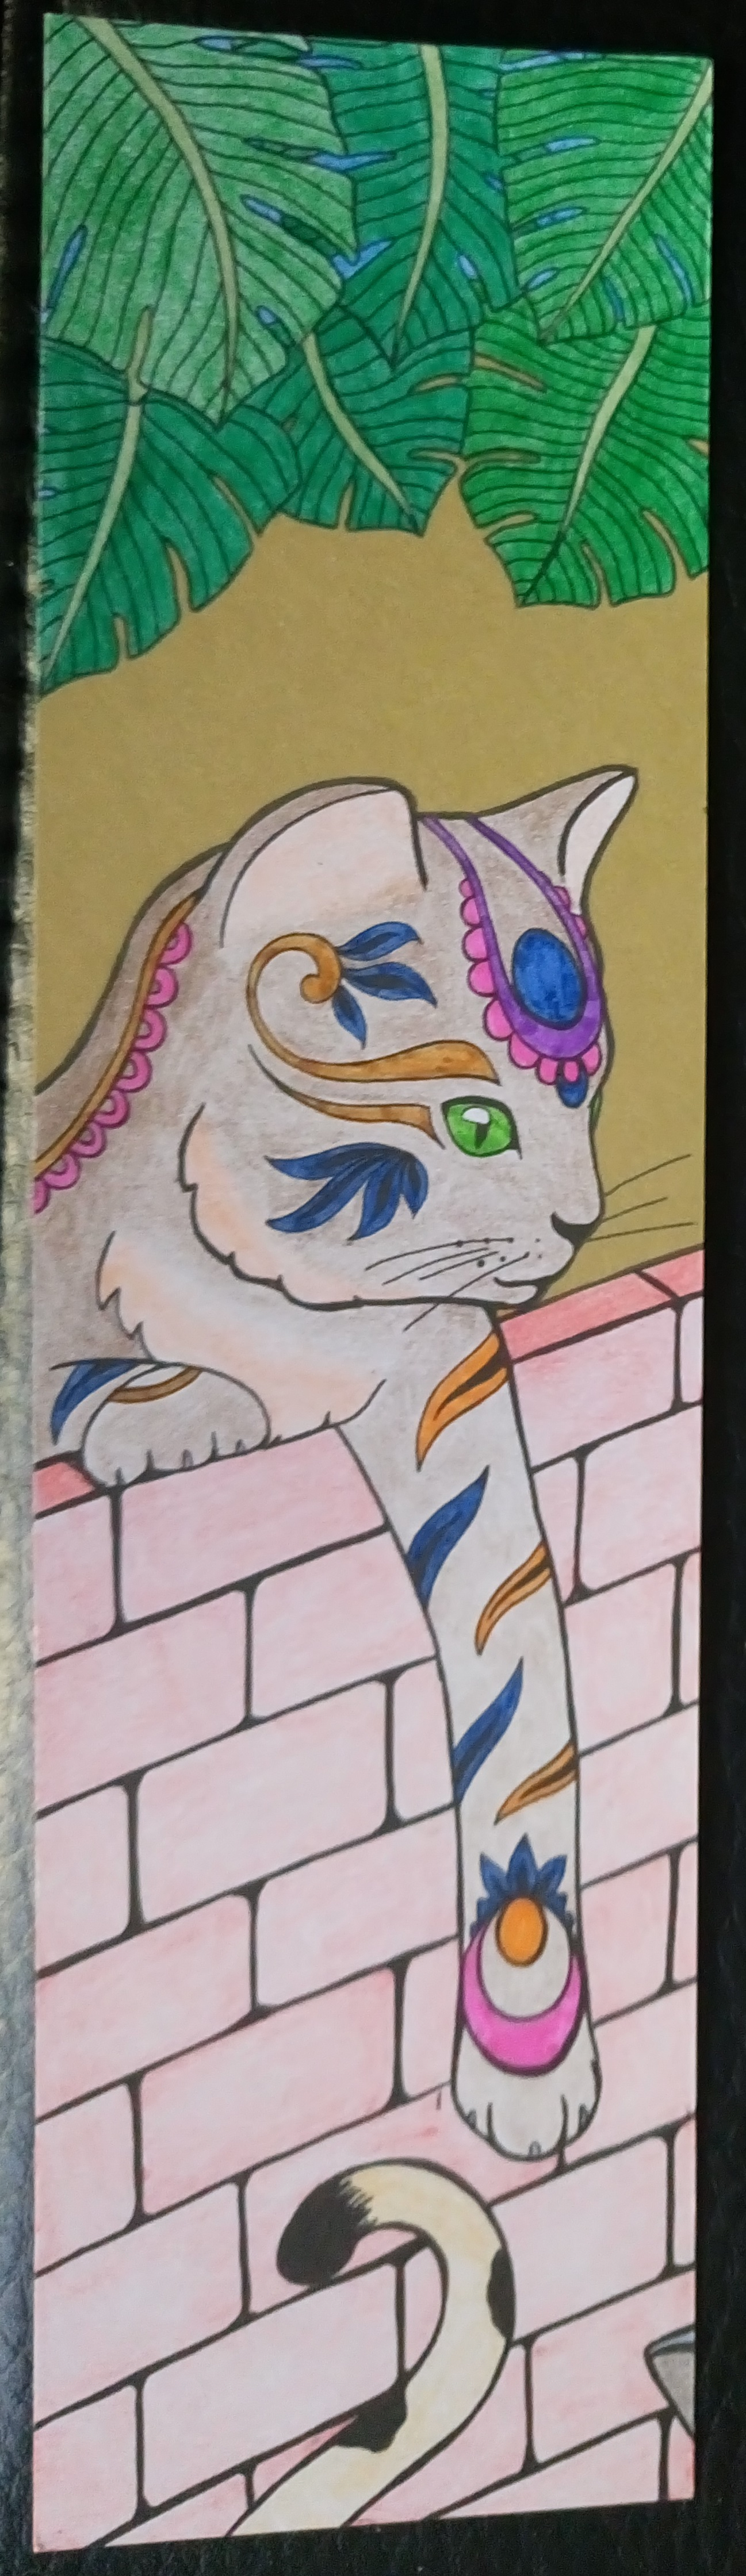 Colouring Mes Marque pages a colorier chats